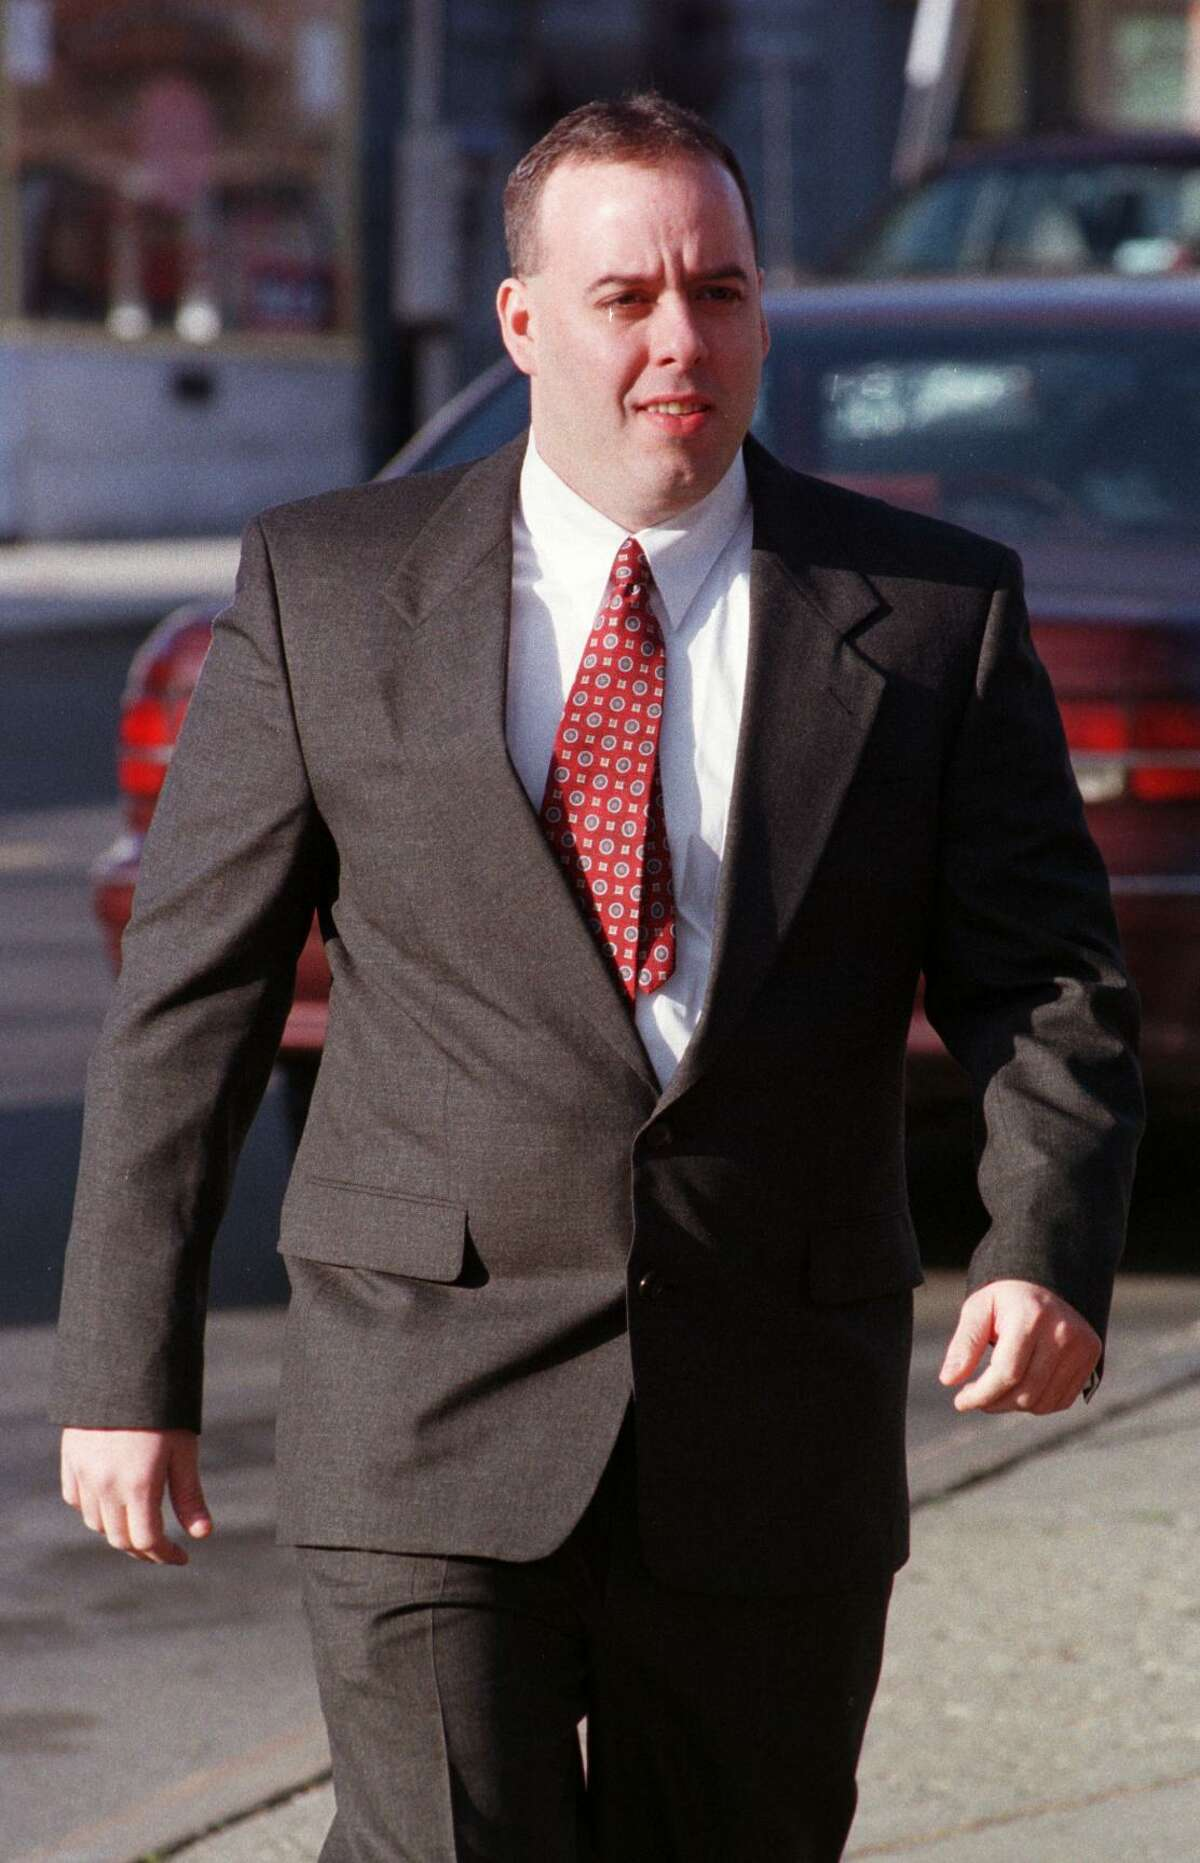 Albany police officer William Bonanni enters the public safety building, Nov. 14, 1998, in downtown Albany on the way to arraignment for alleged perjury charges in the Saint Rose hoop star beating case. (Skip Dickstein/Times Union)